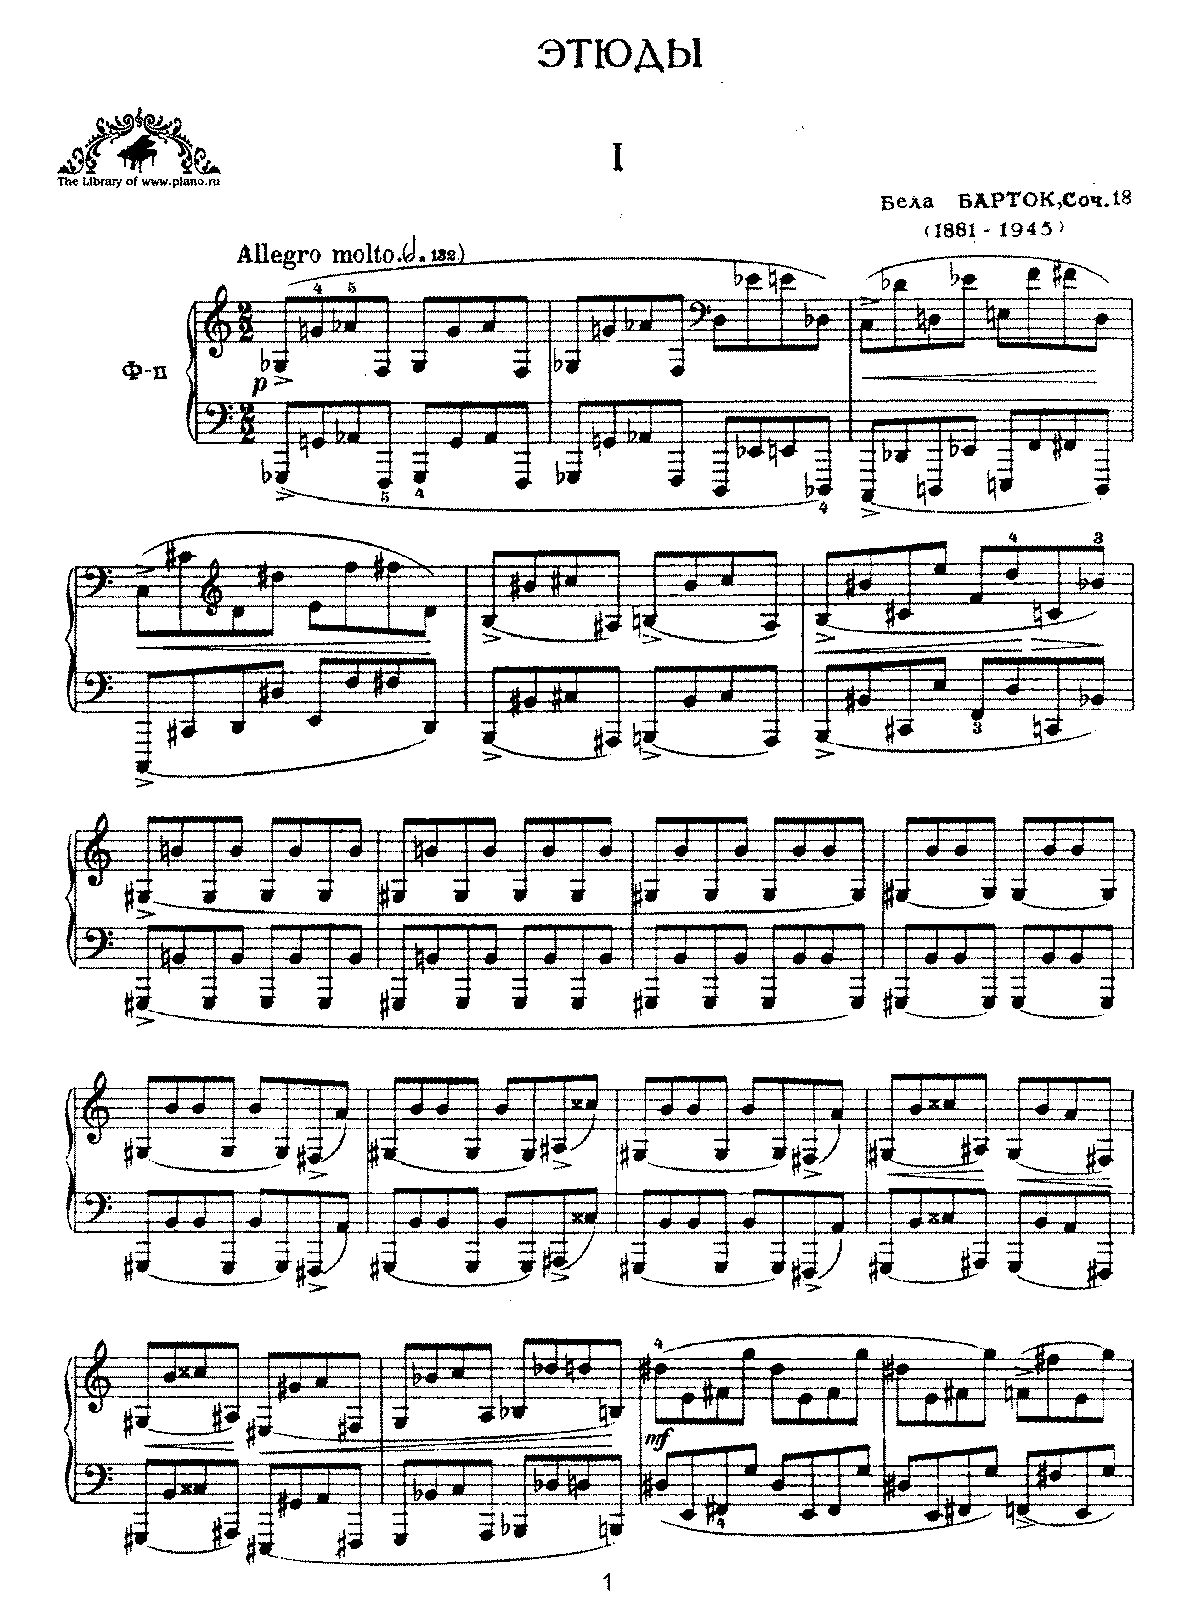 Bartok - Op.18 - Three Studies.pdf